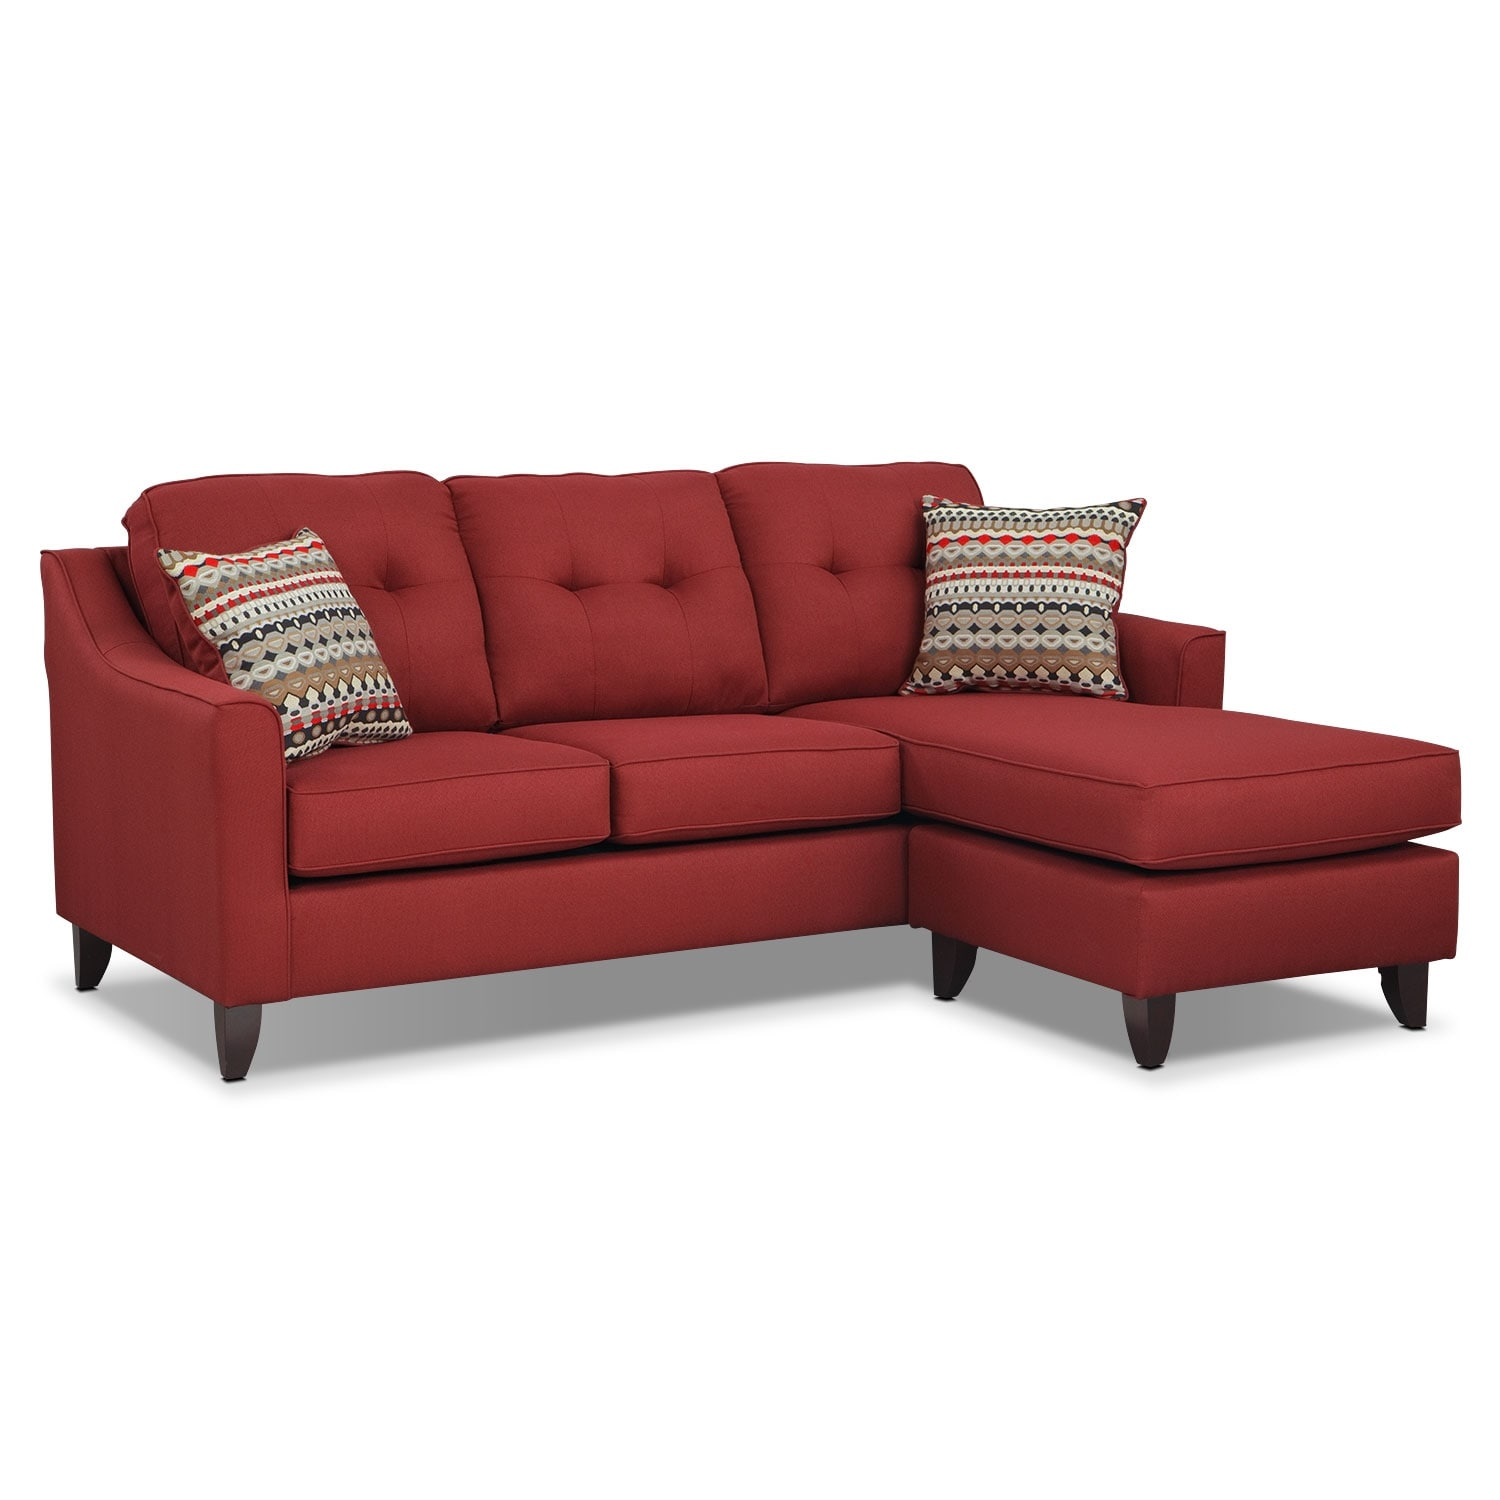 [Marco Red Chaise Sofa]